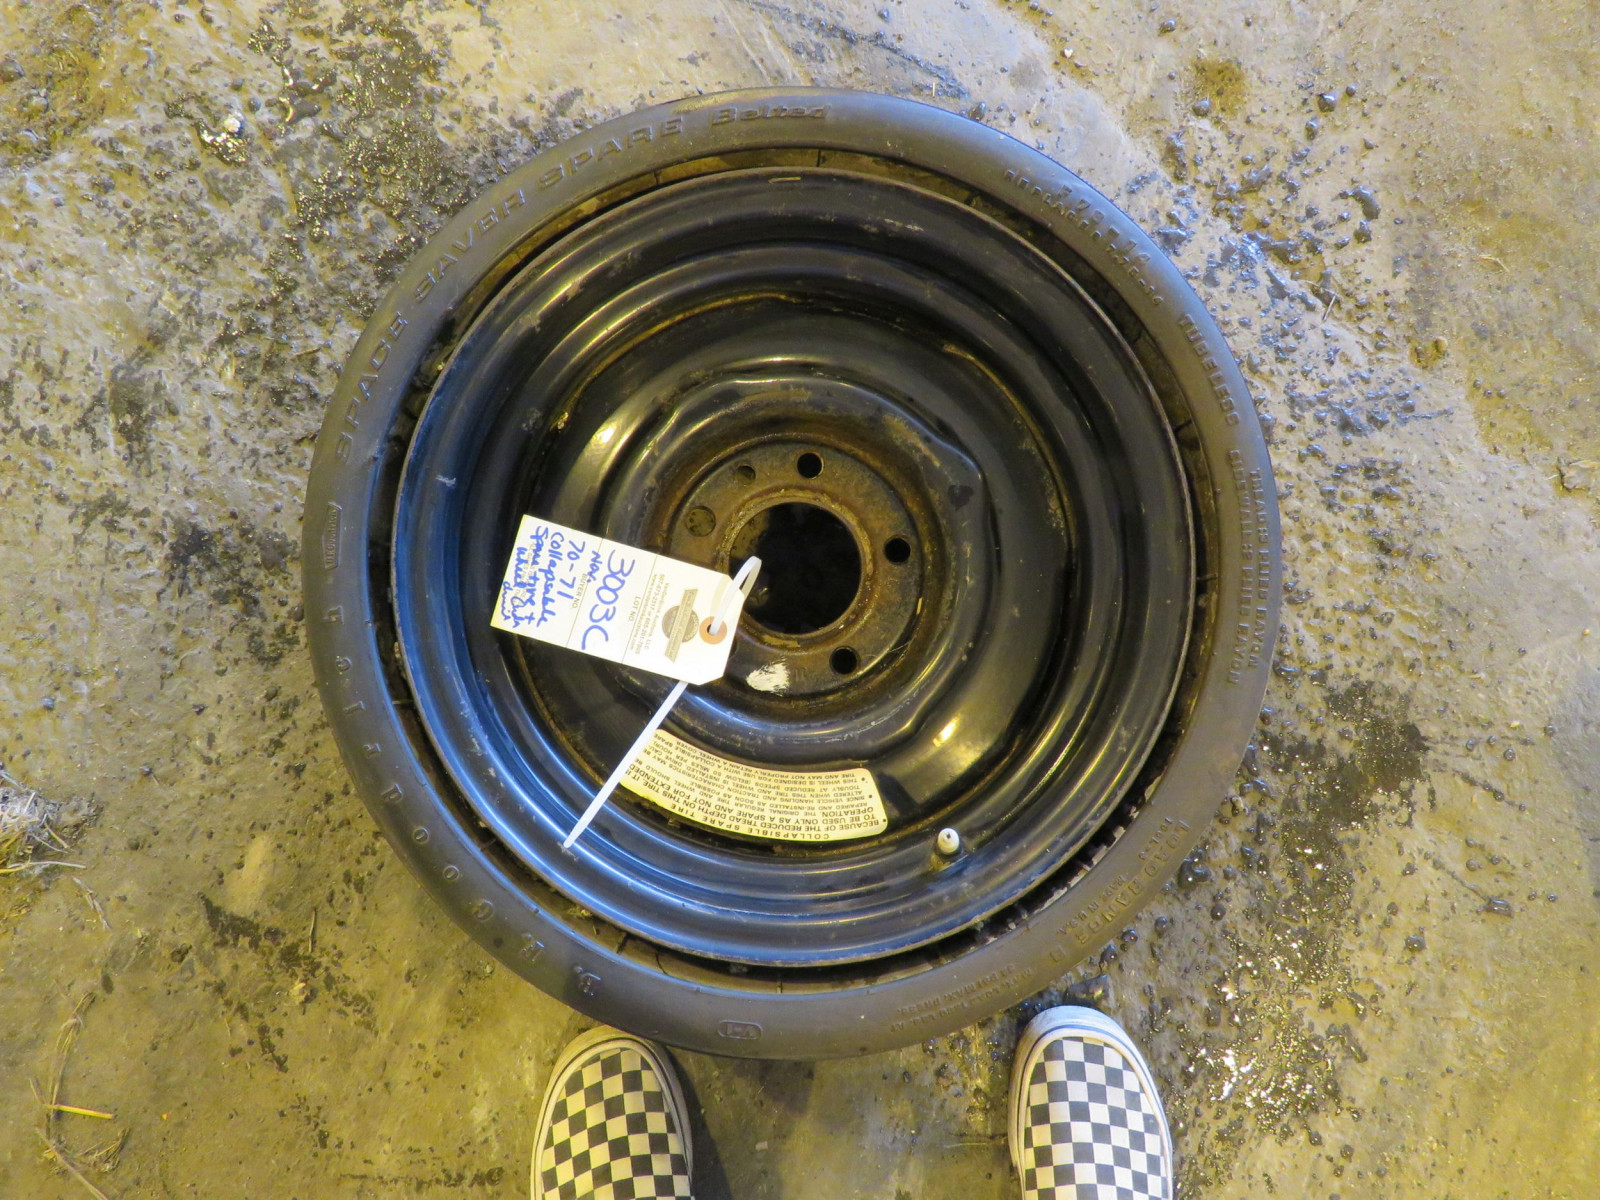 RARE BF Goodrich Collapsible Spare Tire for 426 HEMI CUDA, Challenger - Image 1